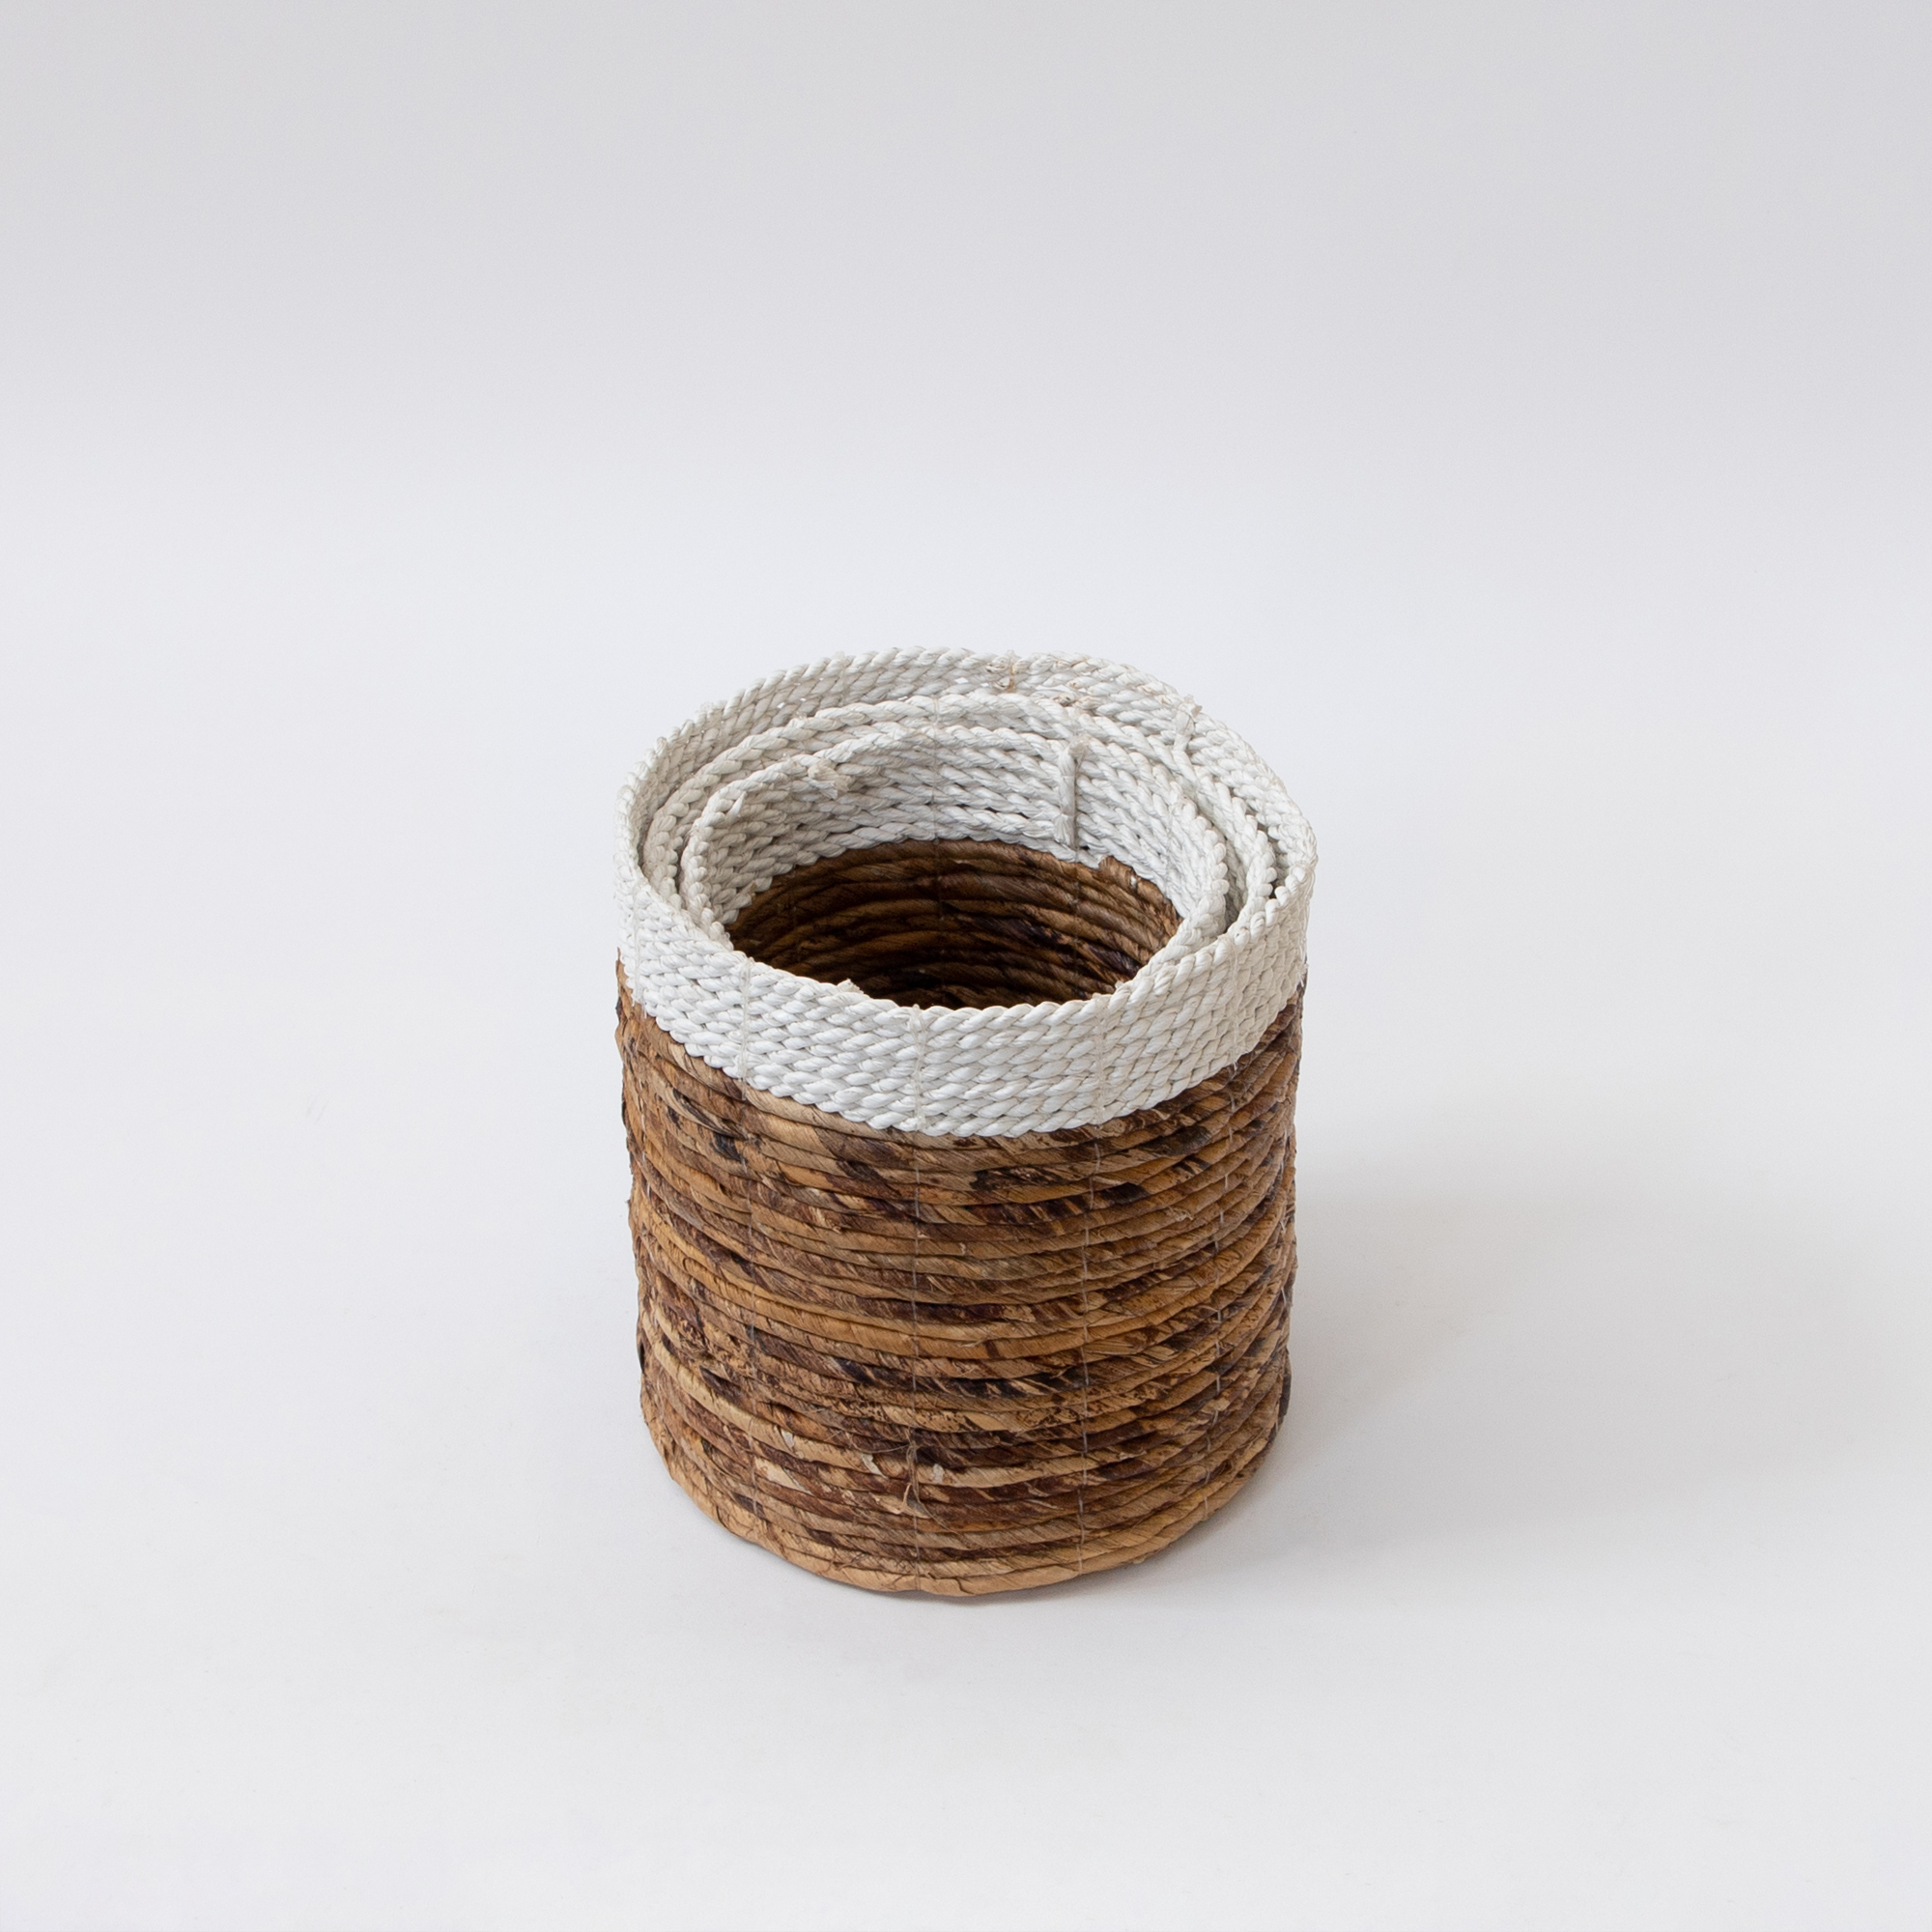 Angkor Banana Leaf Rattan Basket - Natural Ivory